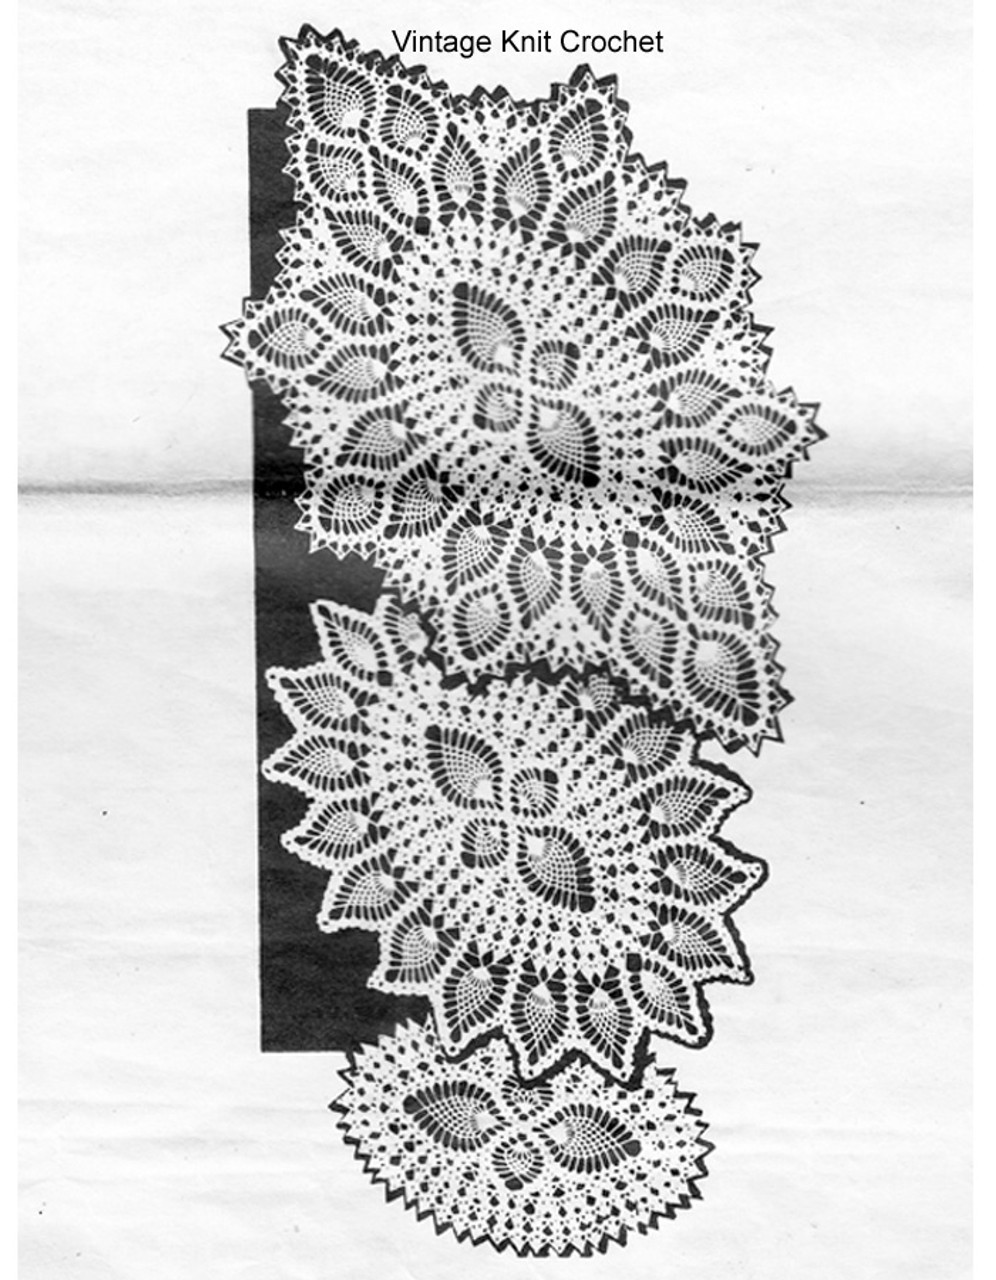 Oval Crochet Doilies, Small medium large, Mail Order Design 850